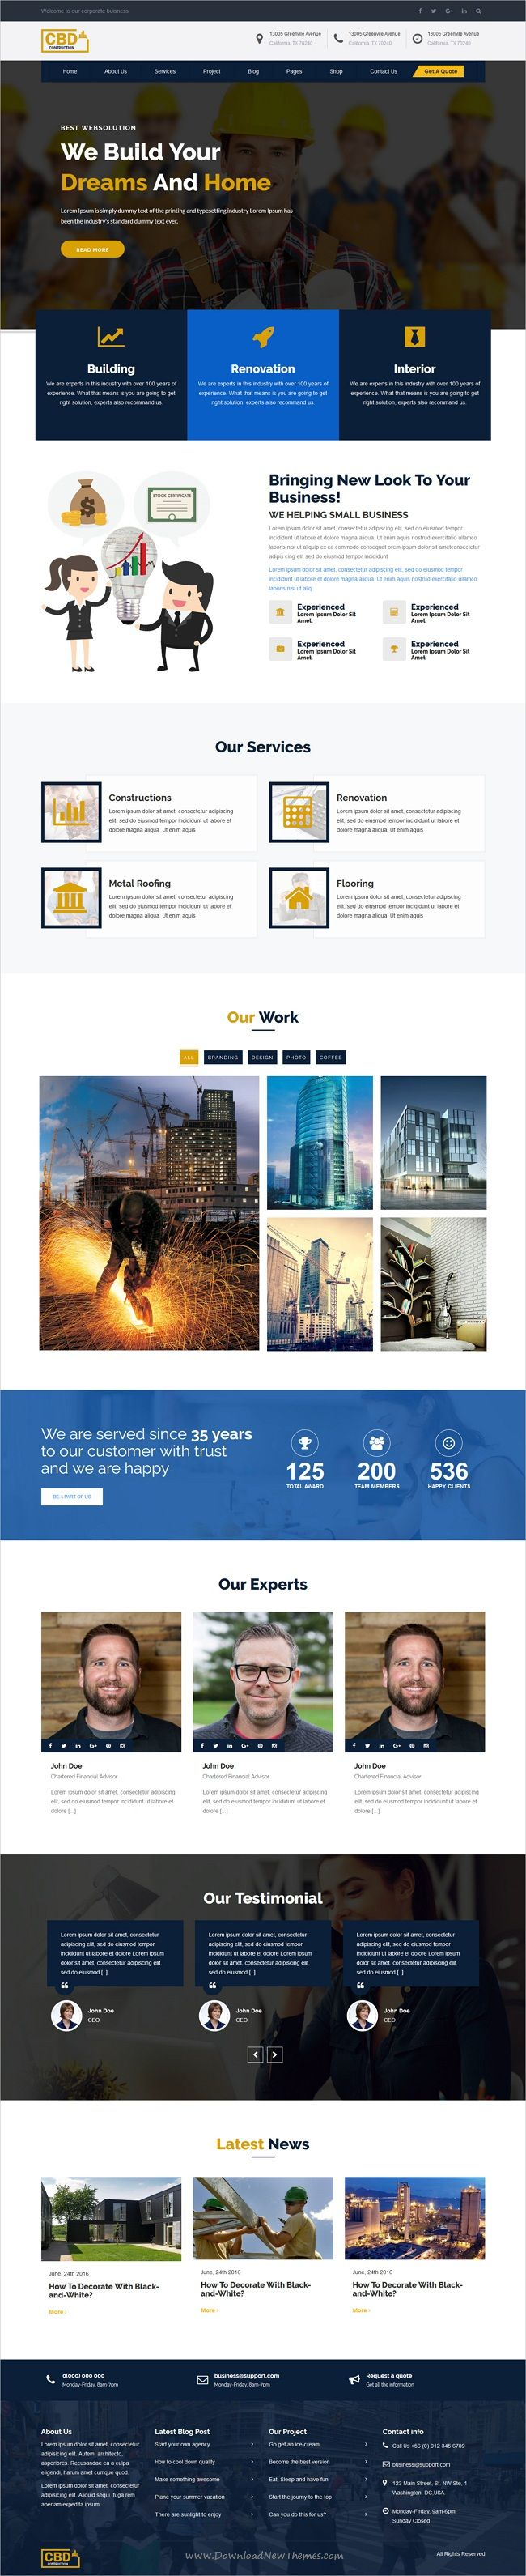 Construct is clean and modern design 5in1 responsive #HTML template for #construction and #architecture company website download now..